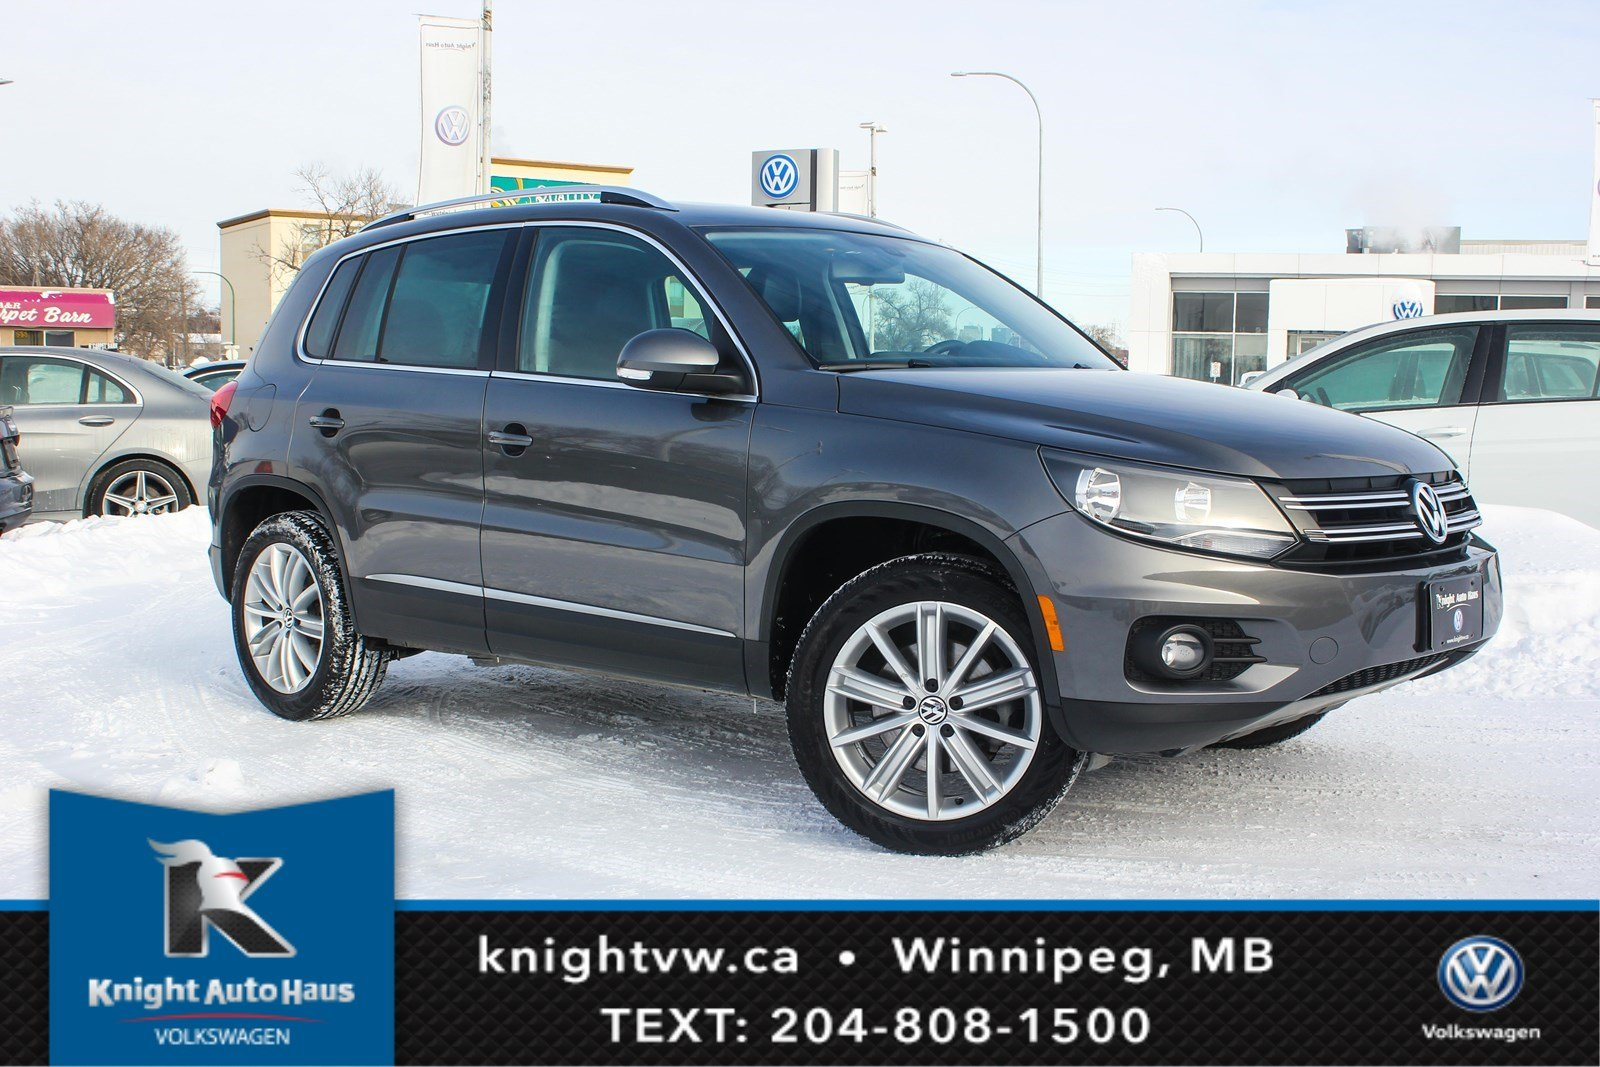 Certified Pre-Owned 2014 Volkswagen Tiguan Highline AWD w/Nav/Fender Sound/Leather 0.9% Financing Available OAC.